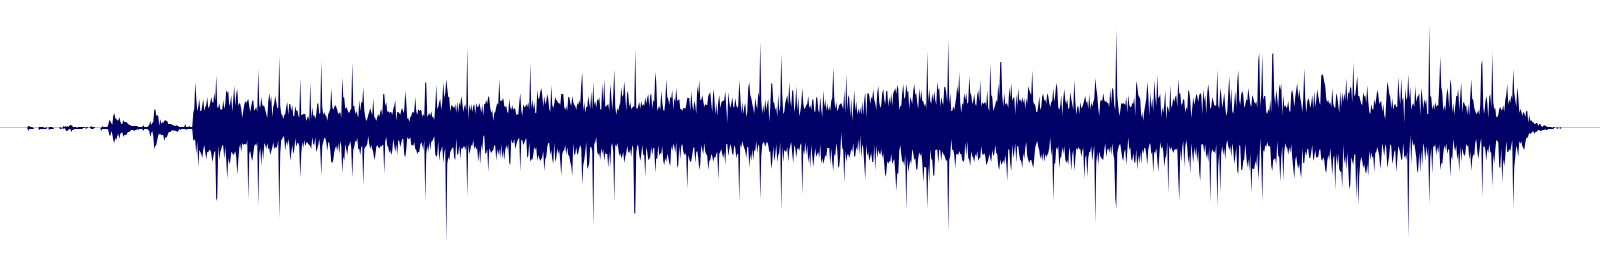 waveform of track #159968